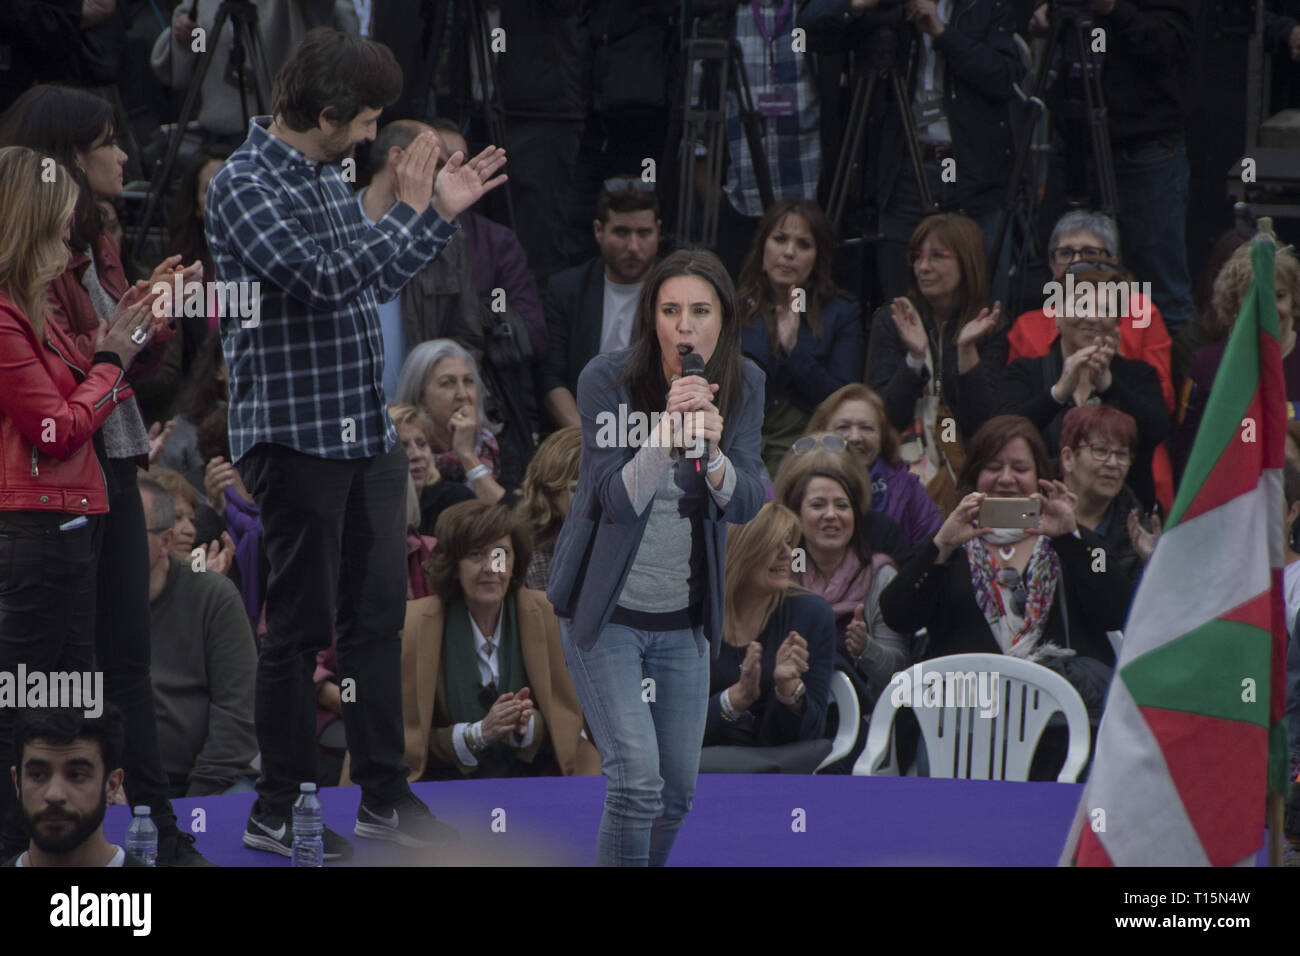 Madrid, Spain. 23rd Mar, 2019. Irene Montero second leader of Unidas Podemos seen giving a speech during the presentation.The left party presentation of the return of paternity permission of Pablo Iglesias at the square attached to the reina sofia de Madrid museum. Pablo Iglesias reappears in the public scene to enjoy the paternity leave. Credit: Alberto Sibaja/SOPA Images/ZUMA Wire/Alamy Live News - Stock Image